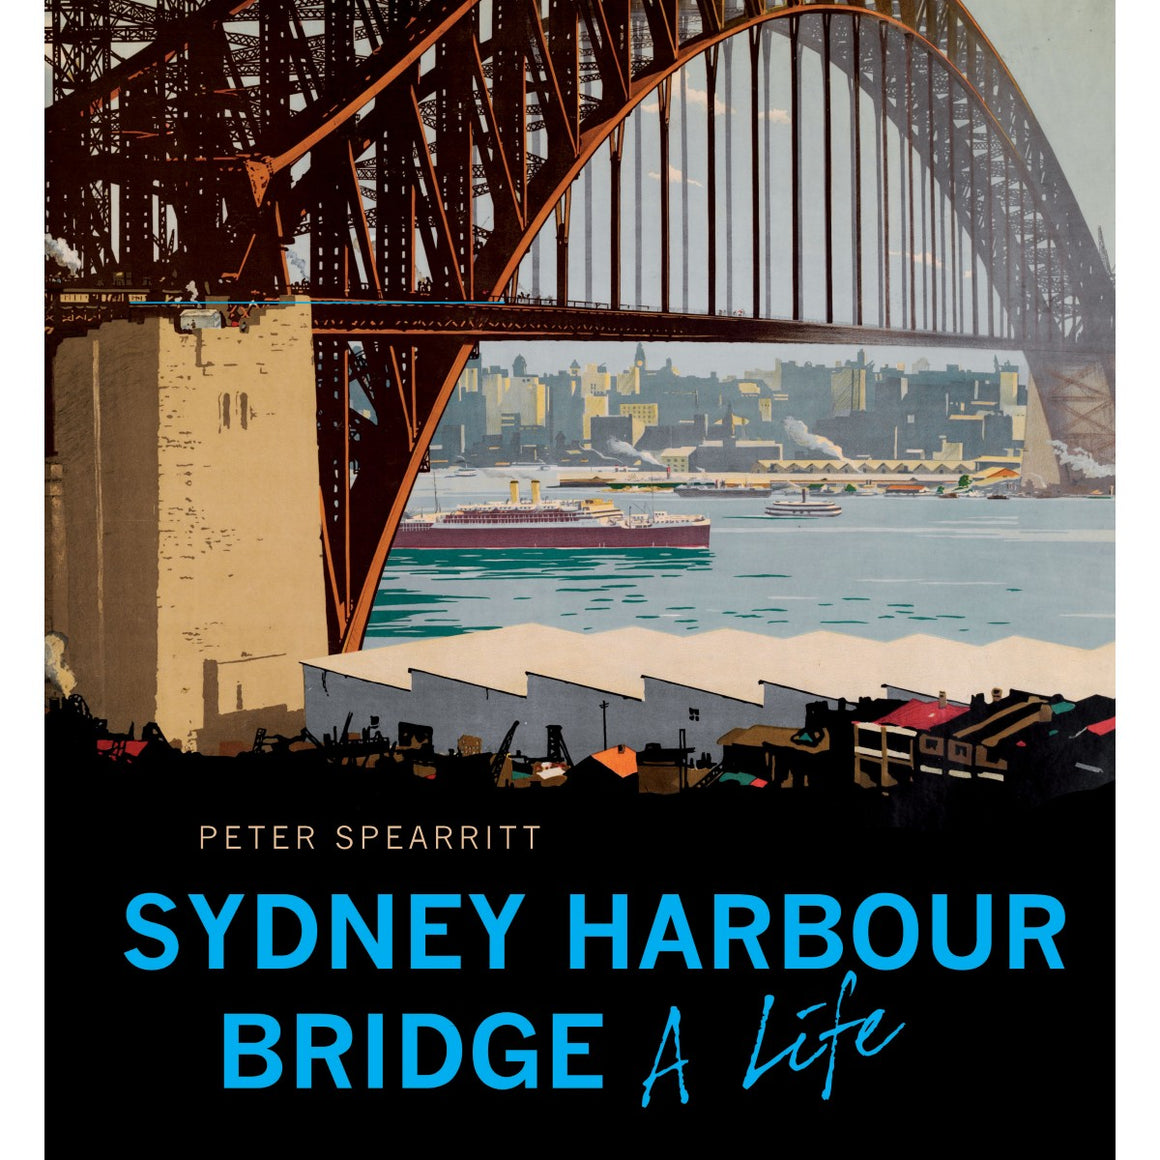 The Sydney Harbour Bridge: A Life (Revised Edition)  | Author: Peter Spearritt